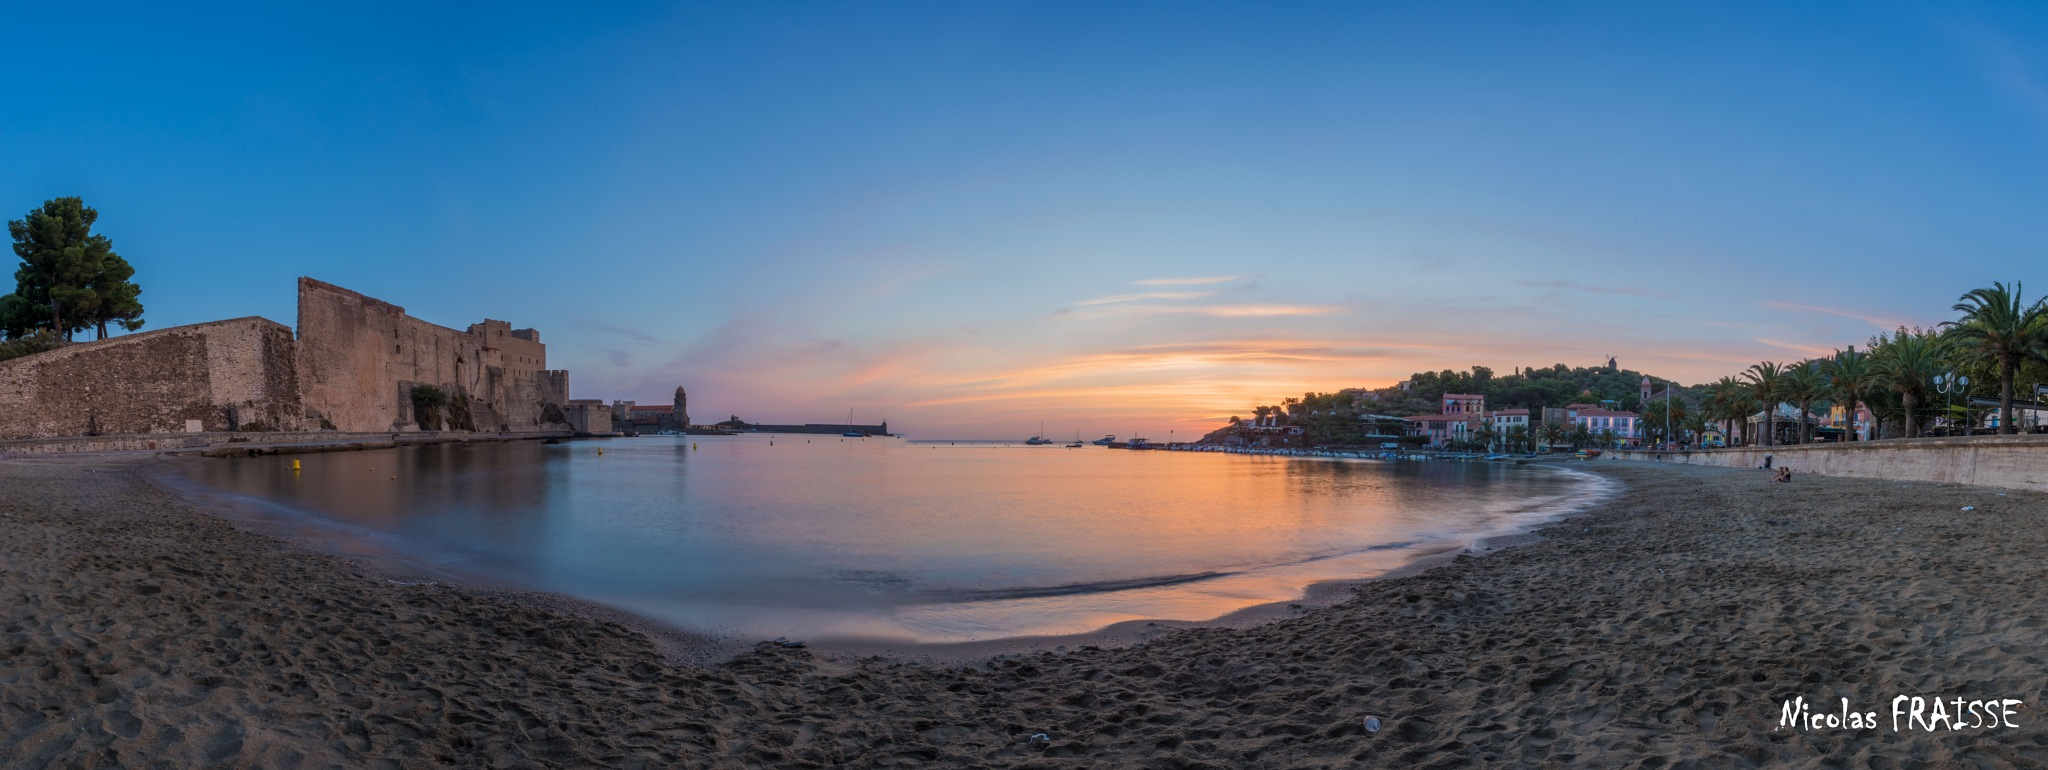 Sunrise in Collioure, Pays Catalan by Nicolas F.